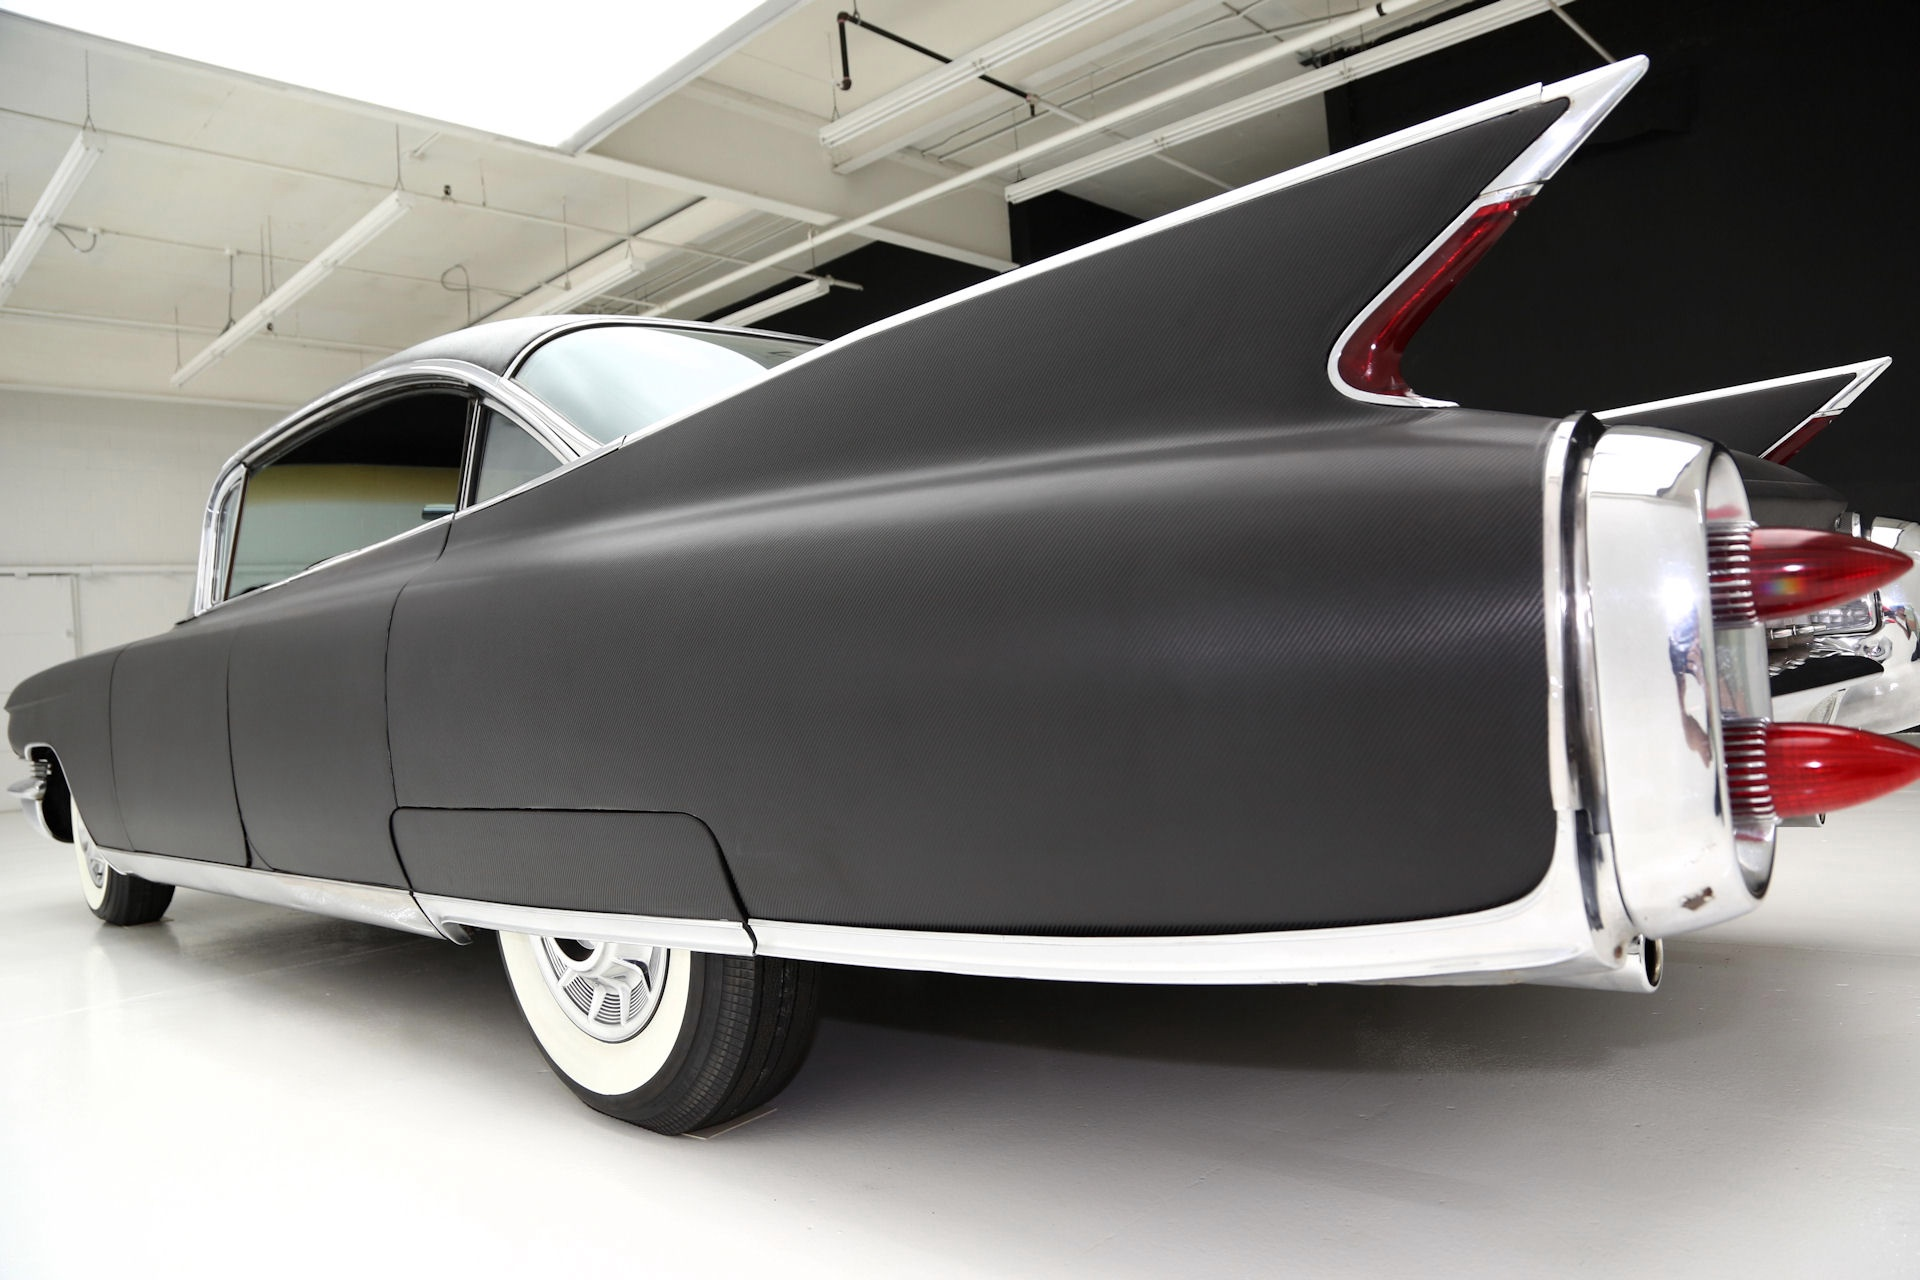 1960 Cadillac Fleetwood V8 1 Of 1 Carbon Caddy